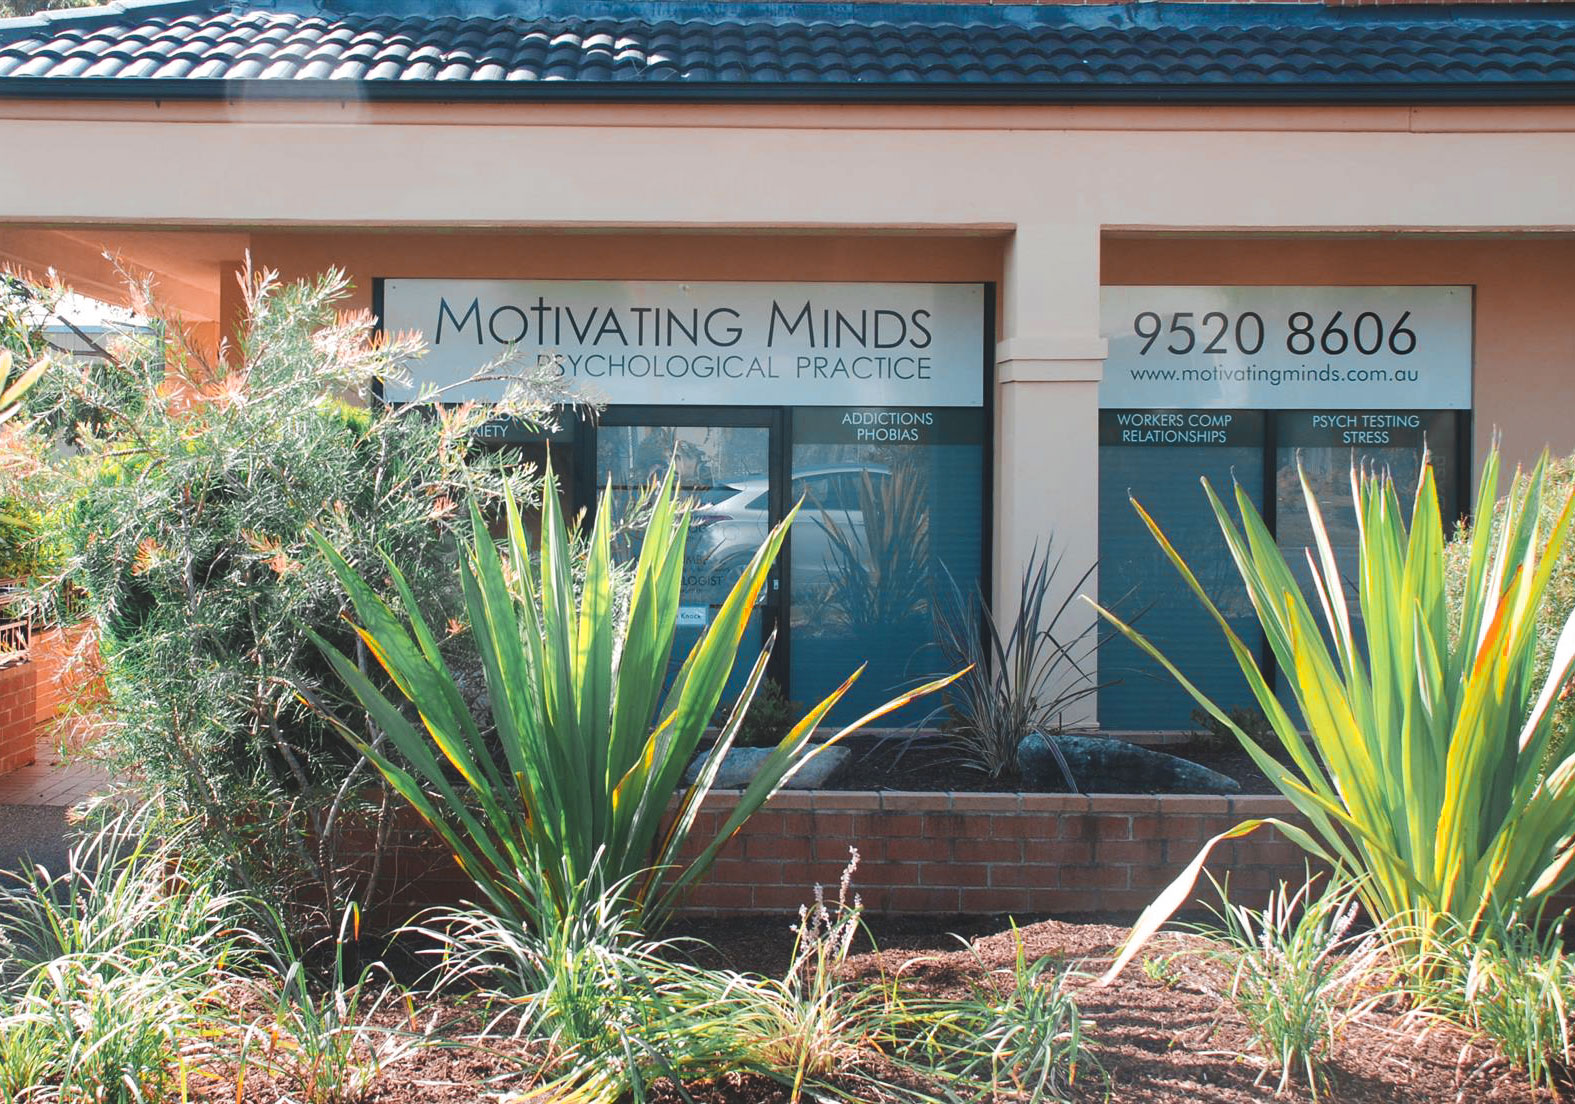 LOCATION(S) - Marathon Therapy sessions will be conducted on site at the combined premises of Motivating Marriages Psychology/Motivating Minds Psychological Practice. 1/6 Preston Avenue, Engadine NSW 2233.There may be occasion where this location is unavailable due to overbooking of existing clients. If this is the case, you will be notified at your time of booking. MMPP has arrangements in place for the use of other suitable off site premises within the Sutherland Shire local area.For couples from out of state or residing internationally, please contact us via email to discuss therapist fly in options should travelling be an issuefor you.